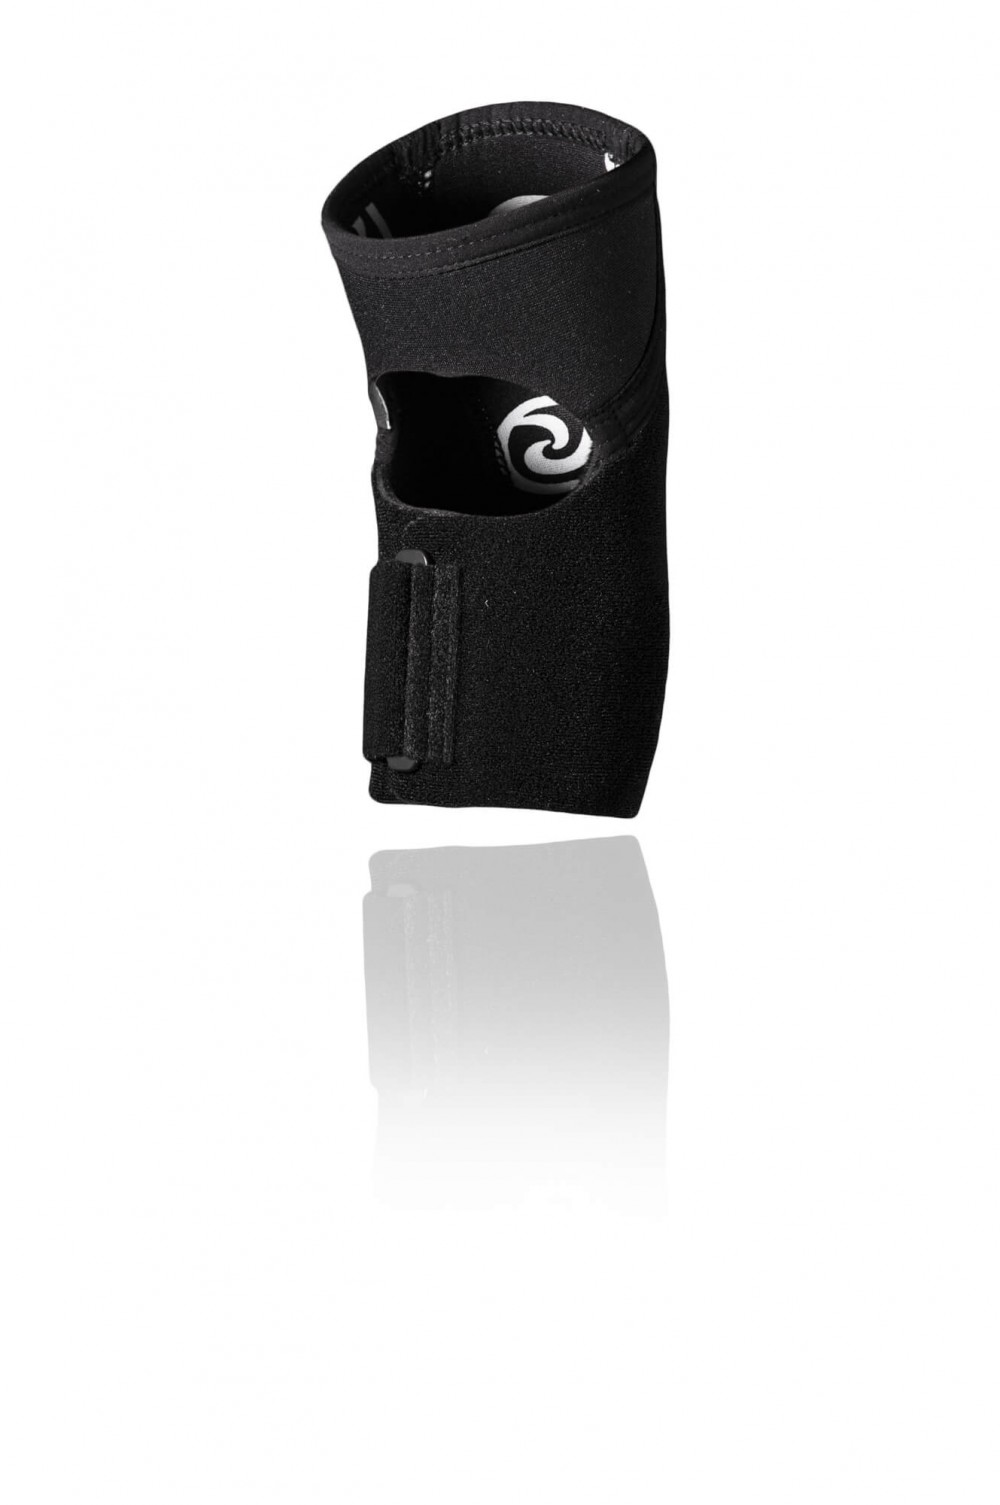 UD Tennis Elbow Sleeve 3mm - Black - S